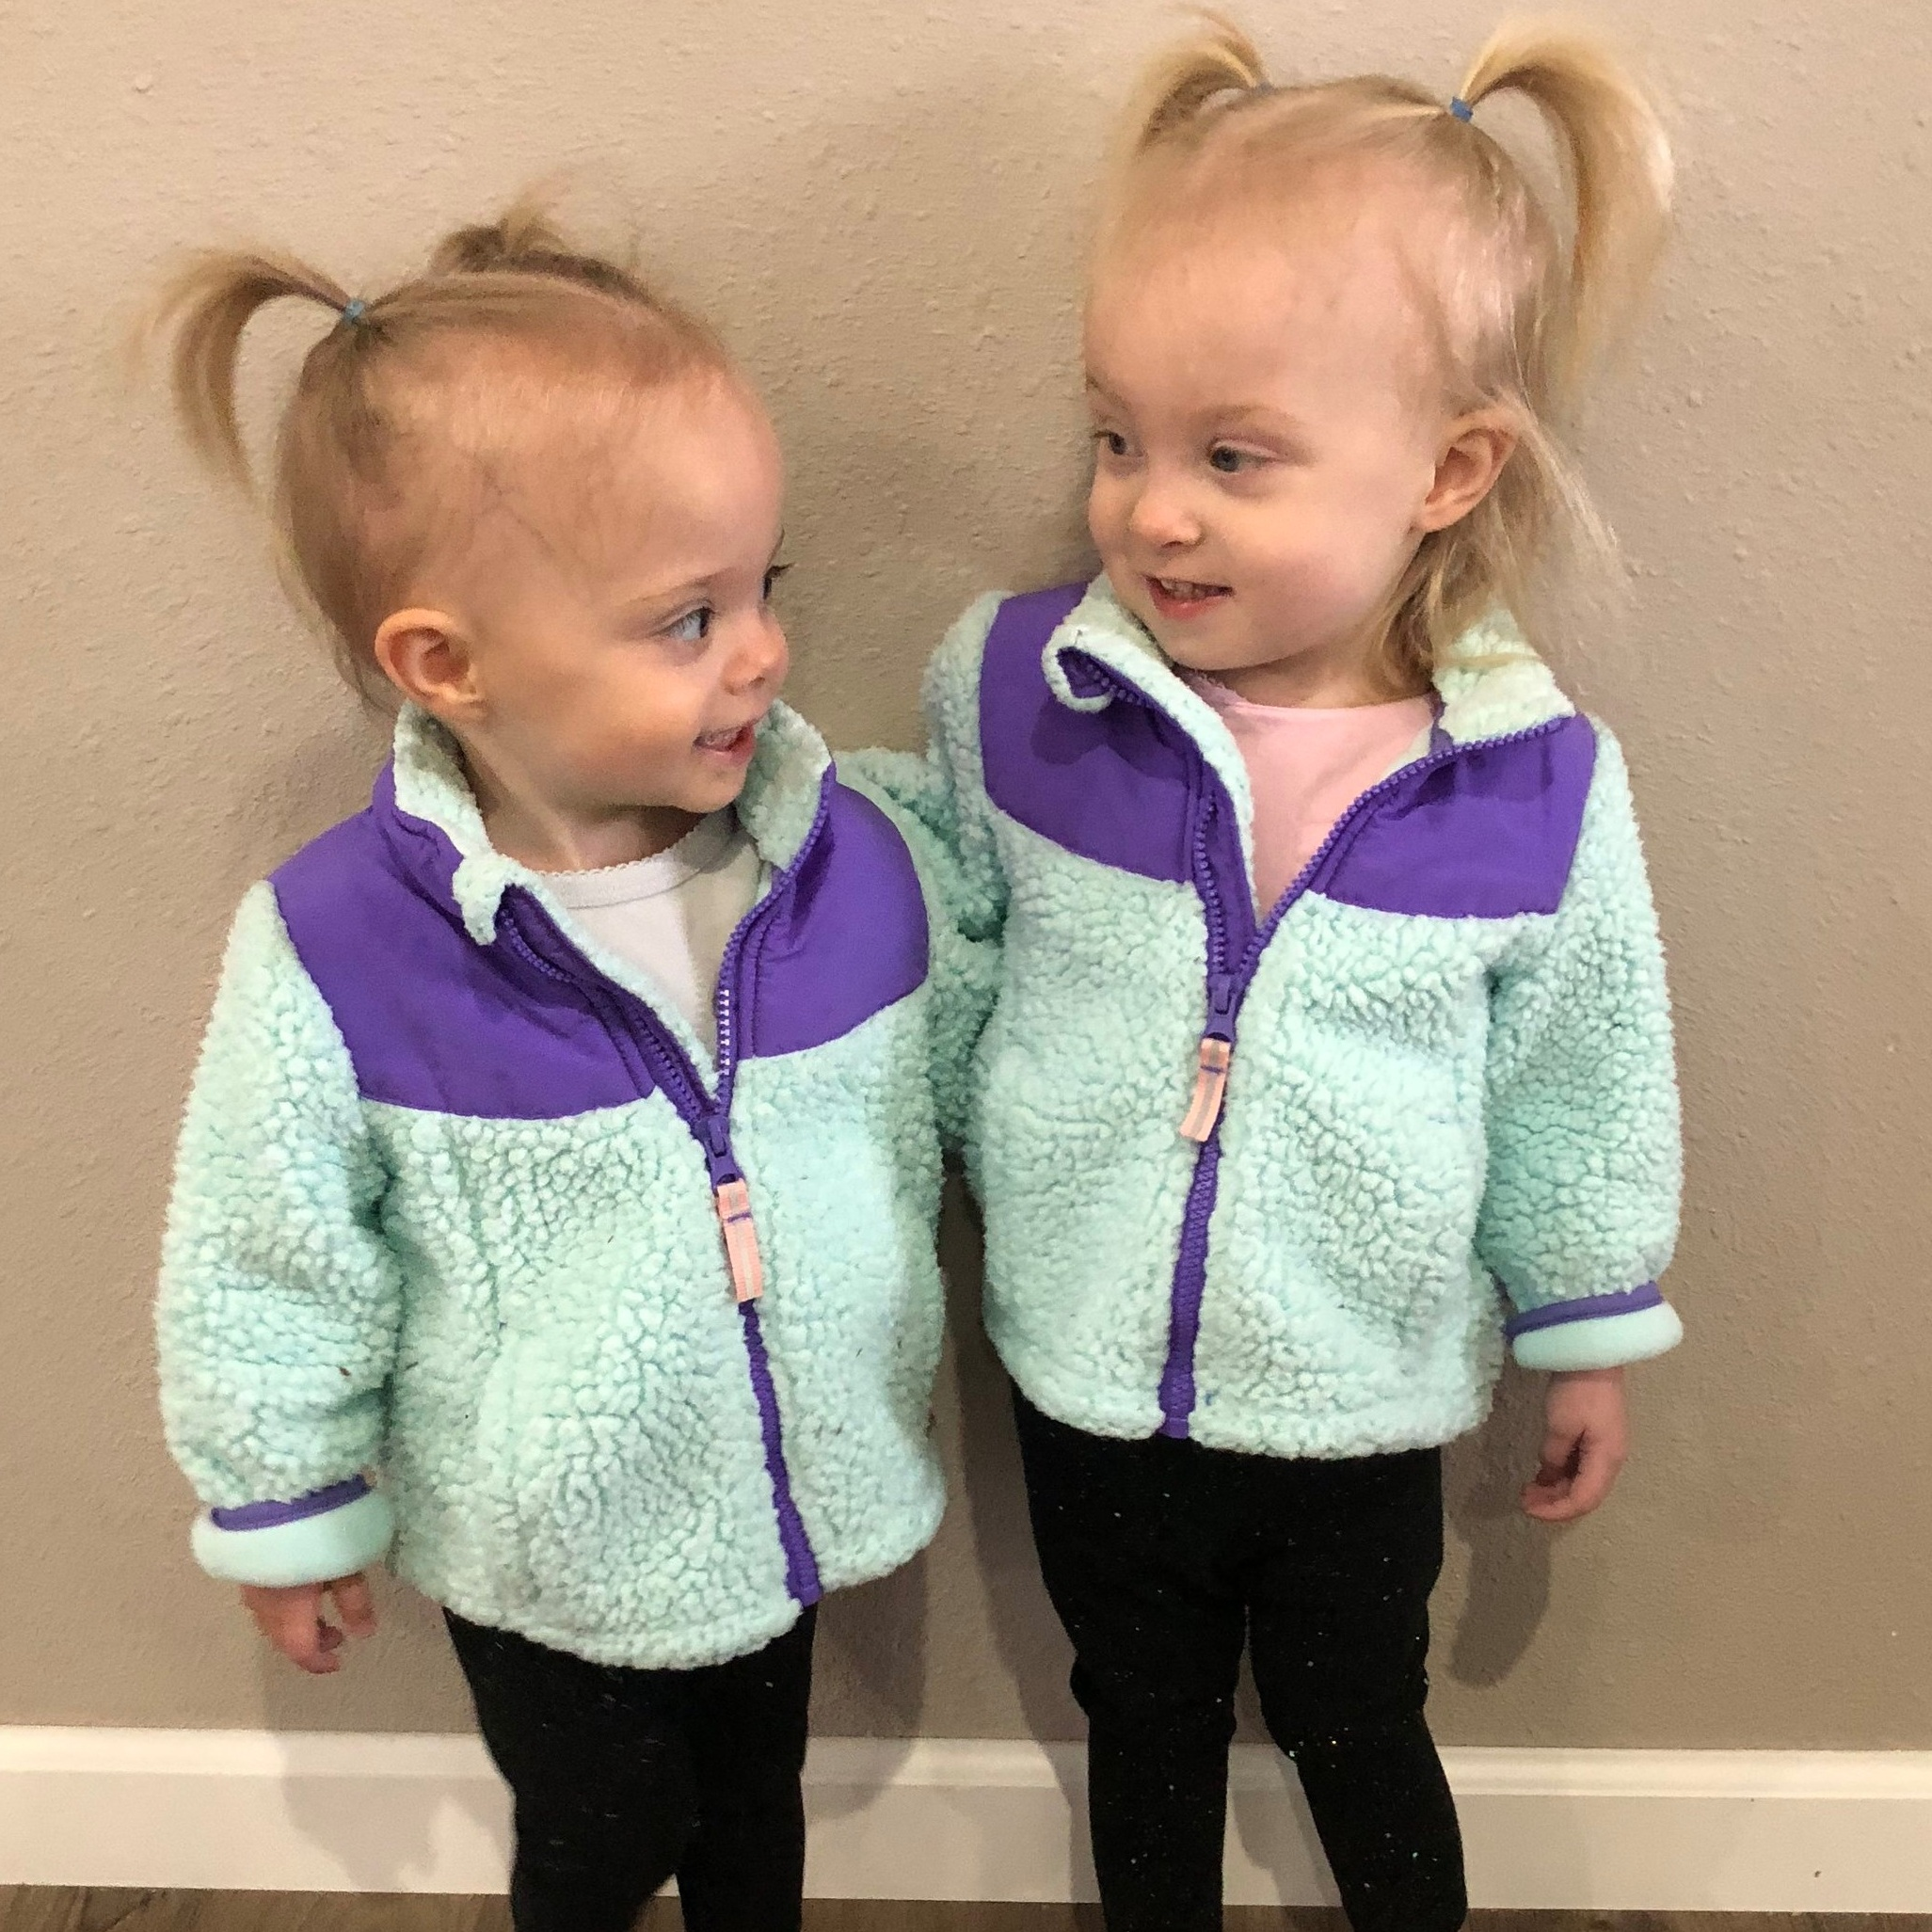 """- """"They defeated the odds against them and pushed through learning to breathe and to eat on their own. At 1 pound 8 ounces and 2 pounds they showed me what true fighters are, and inspired me to do just the same.""""-Vic McCain (Clara and Abigail's mom)"""